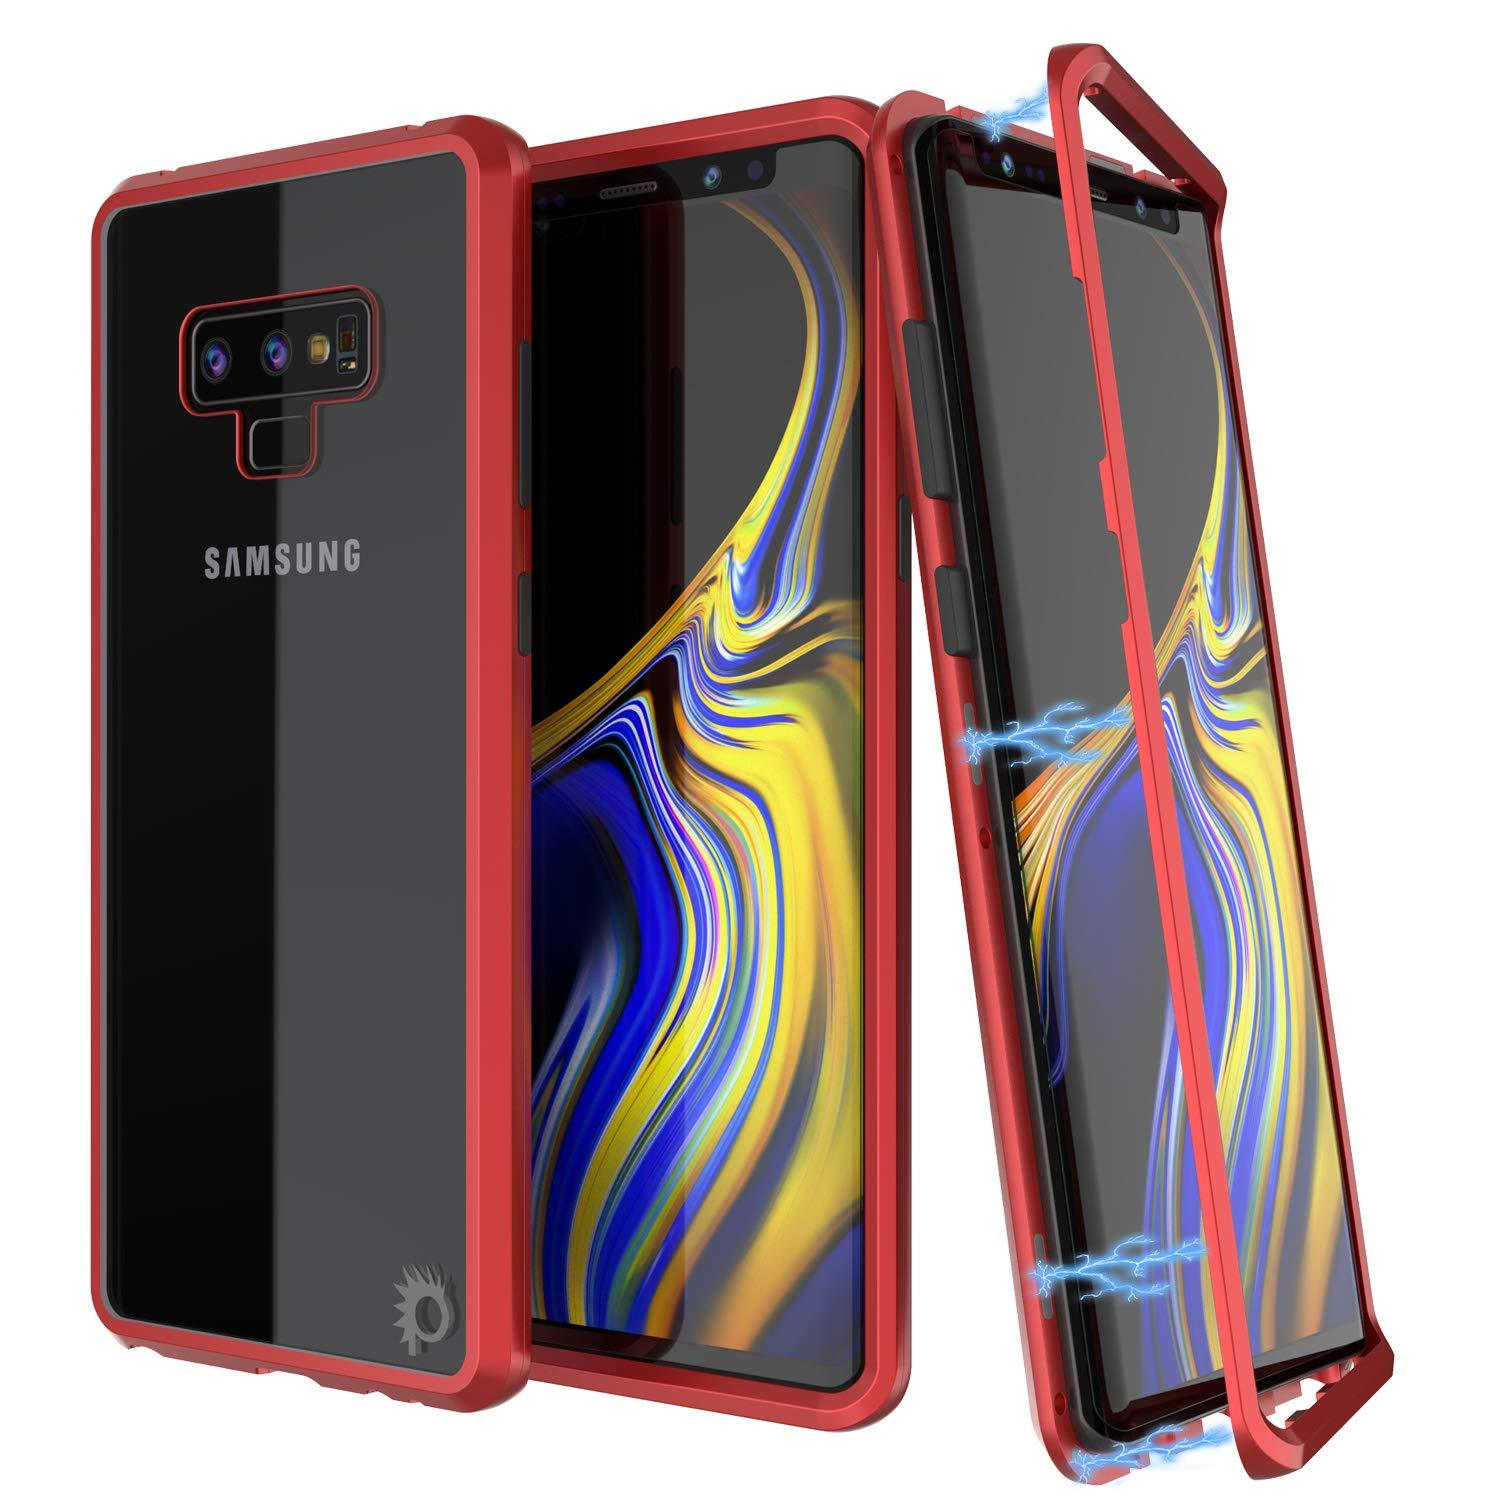 Galaxy Note 9 Case, Punkcase Magnetix 2.0 Protective TPU Cover W/ Tempered Glass Screen Protector [Red]